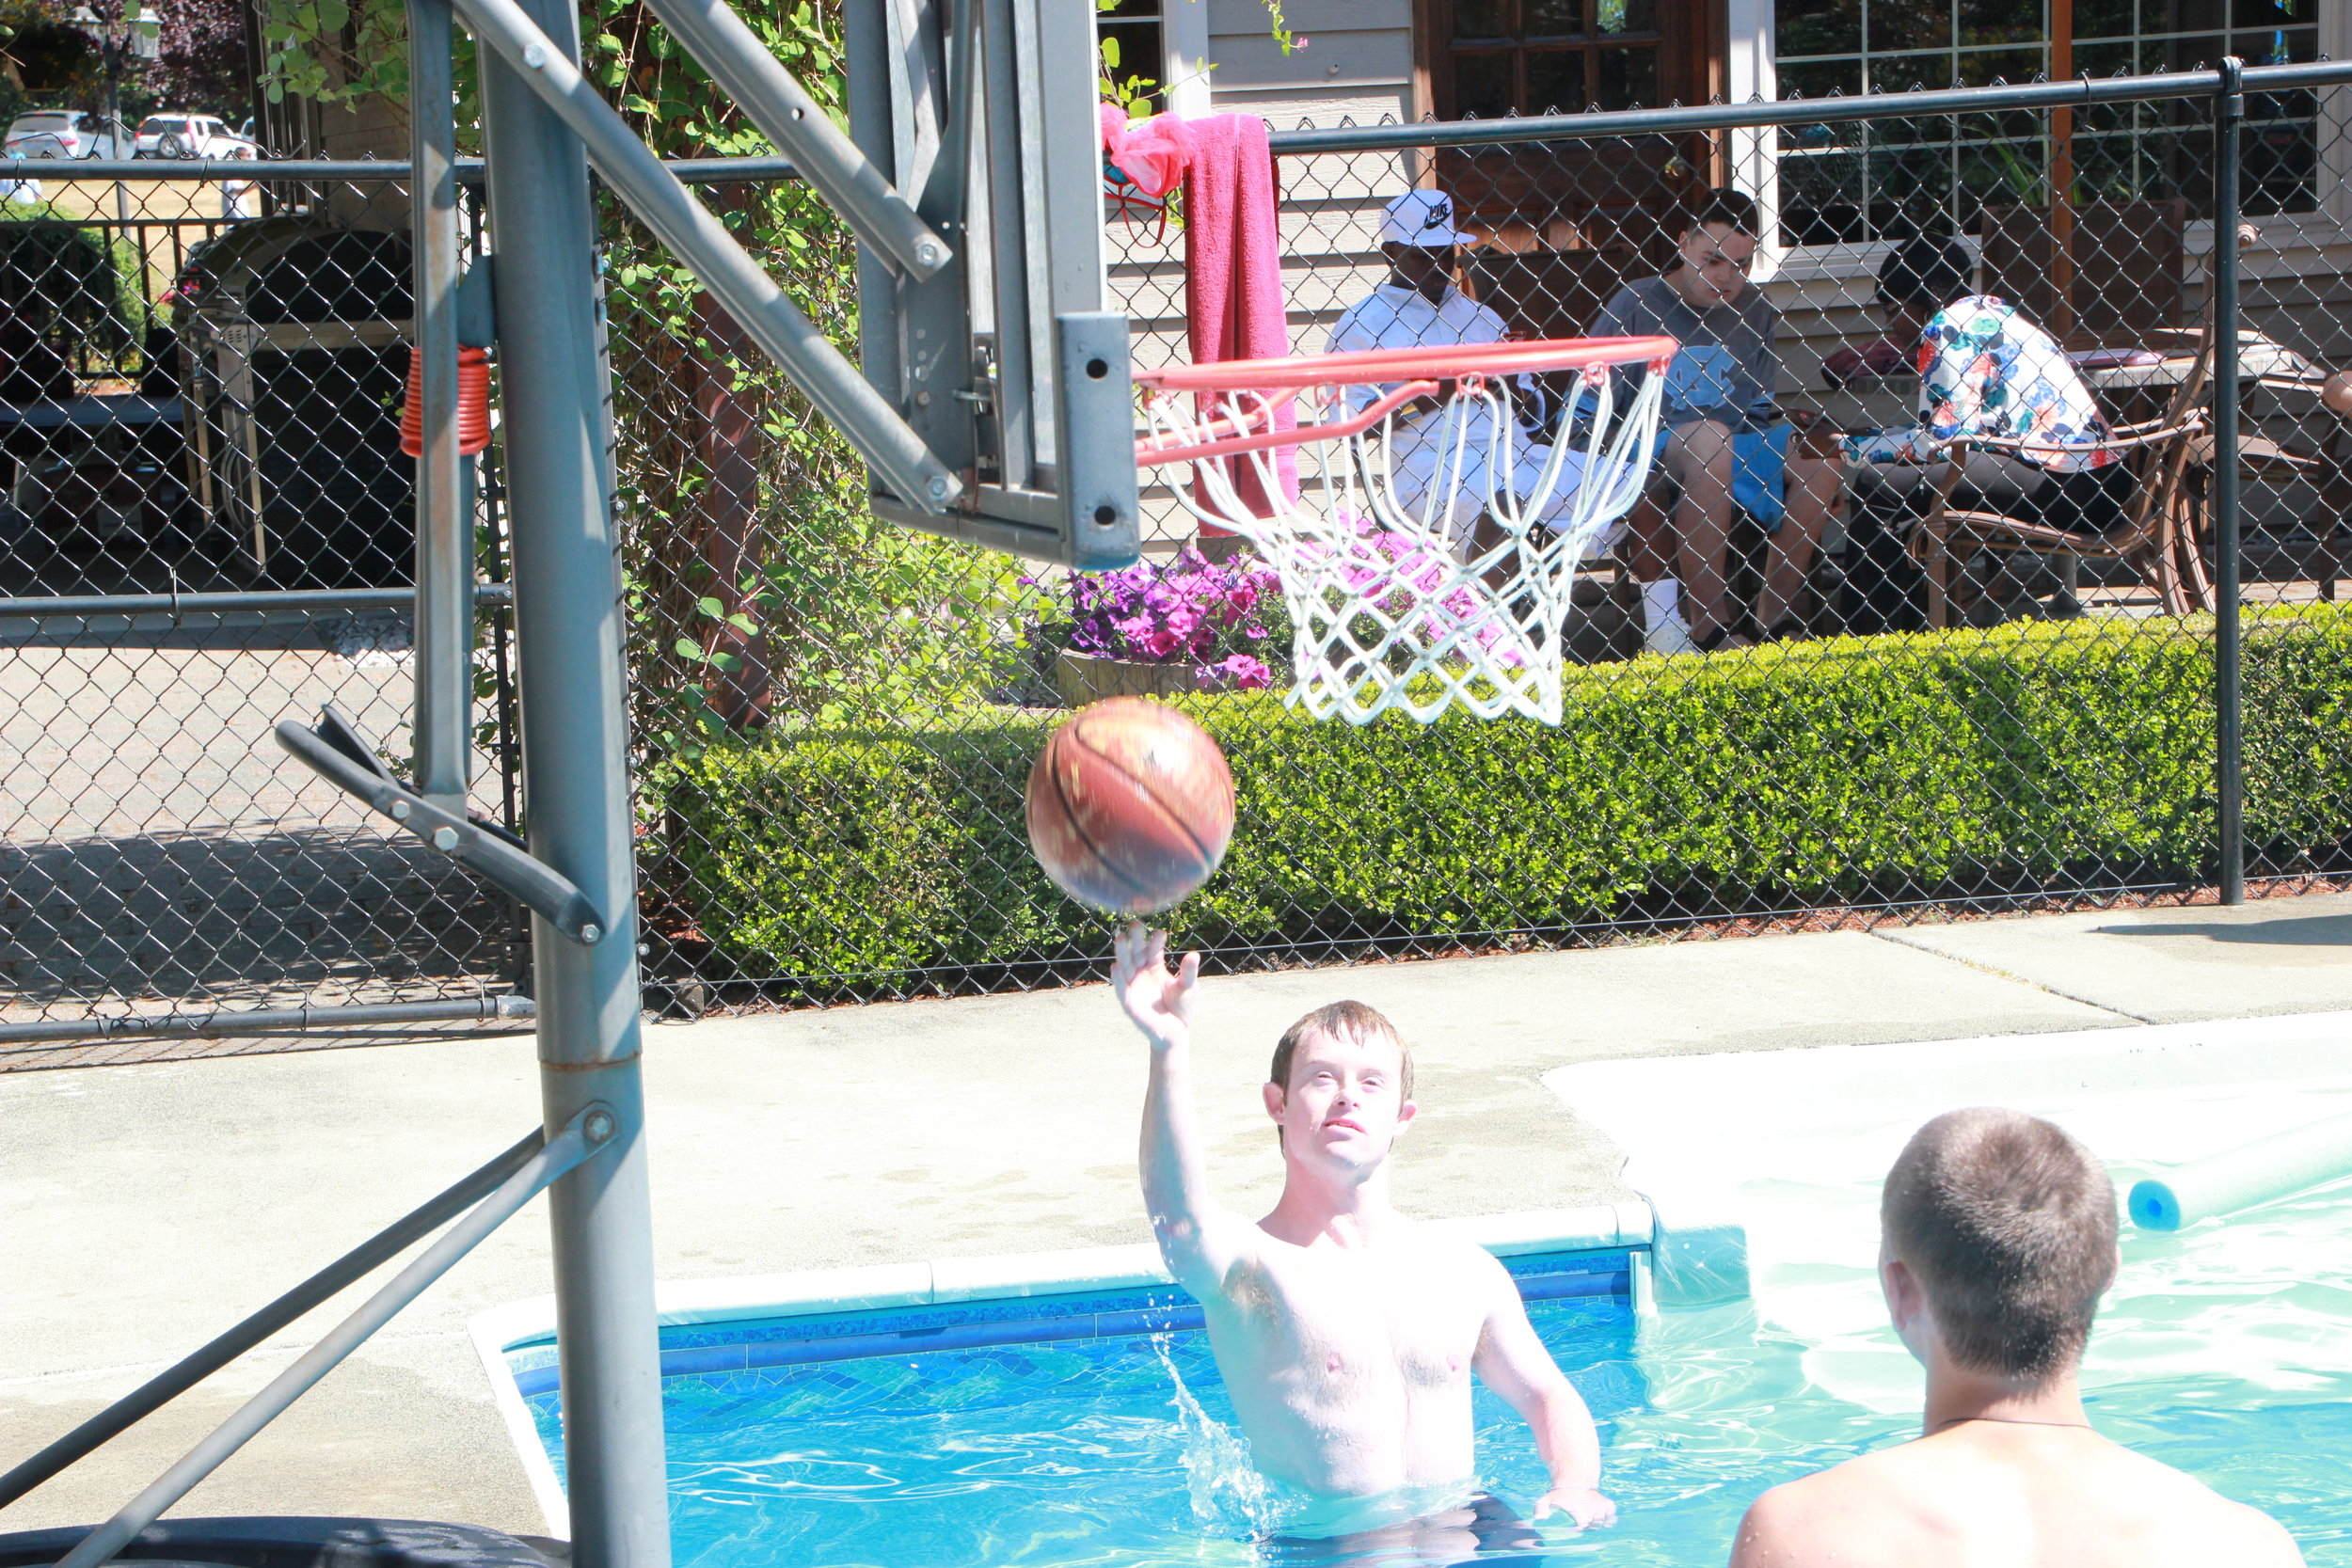 basketball in pool.jpg